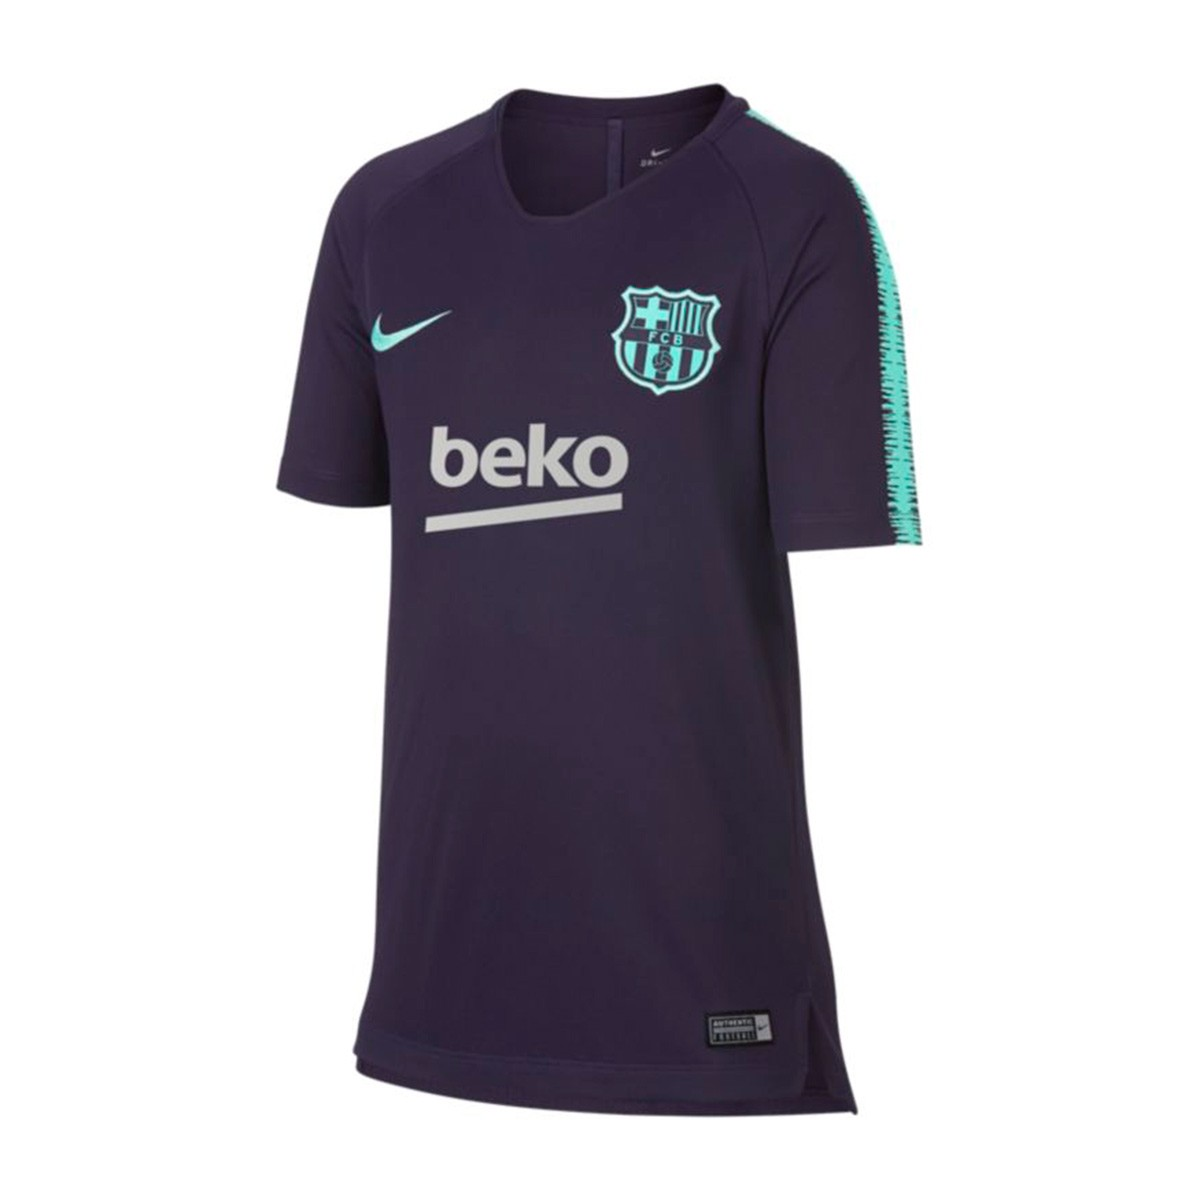 292019d7176 Jersey Nike Kids FC Barcelona Squad 2018-2019 Purple dynasty-Hyper  turquoise - Football store Fútbol Emotion